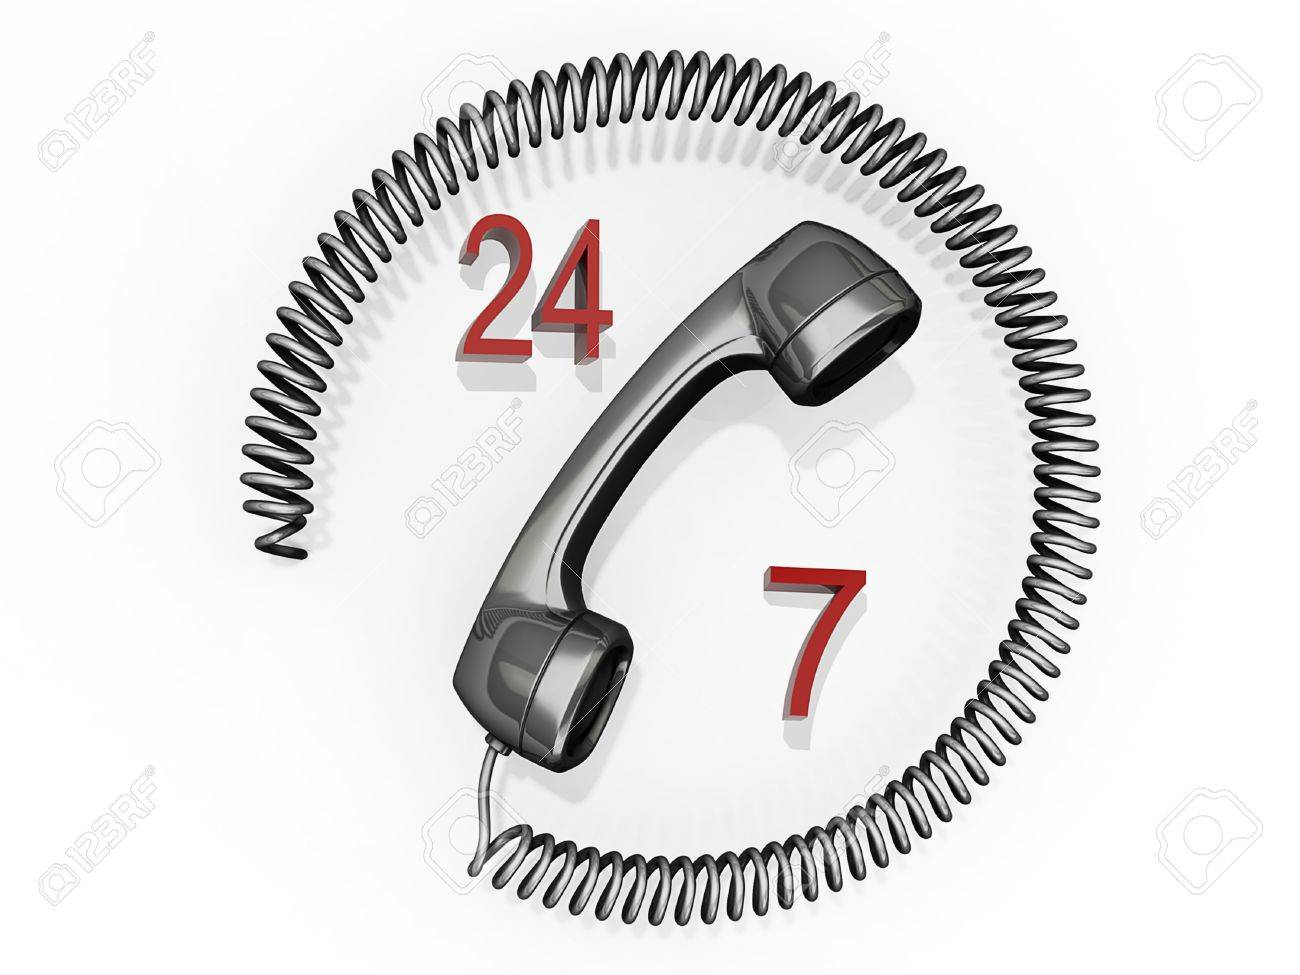 Phone receiver with its cord in a circle around it and the numbers 24 and 7. Stock Photo - 11563250